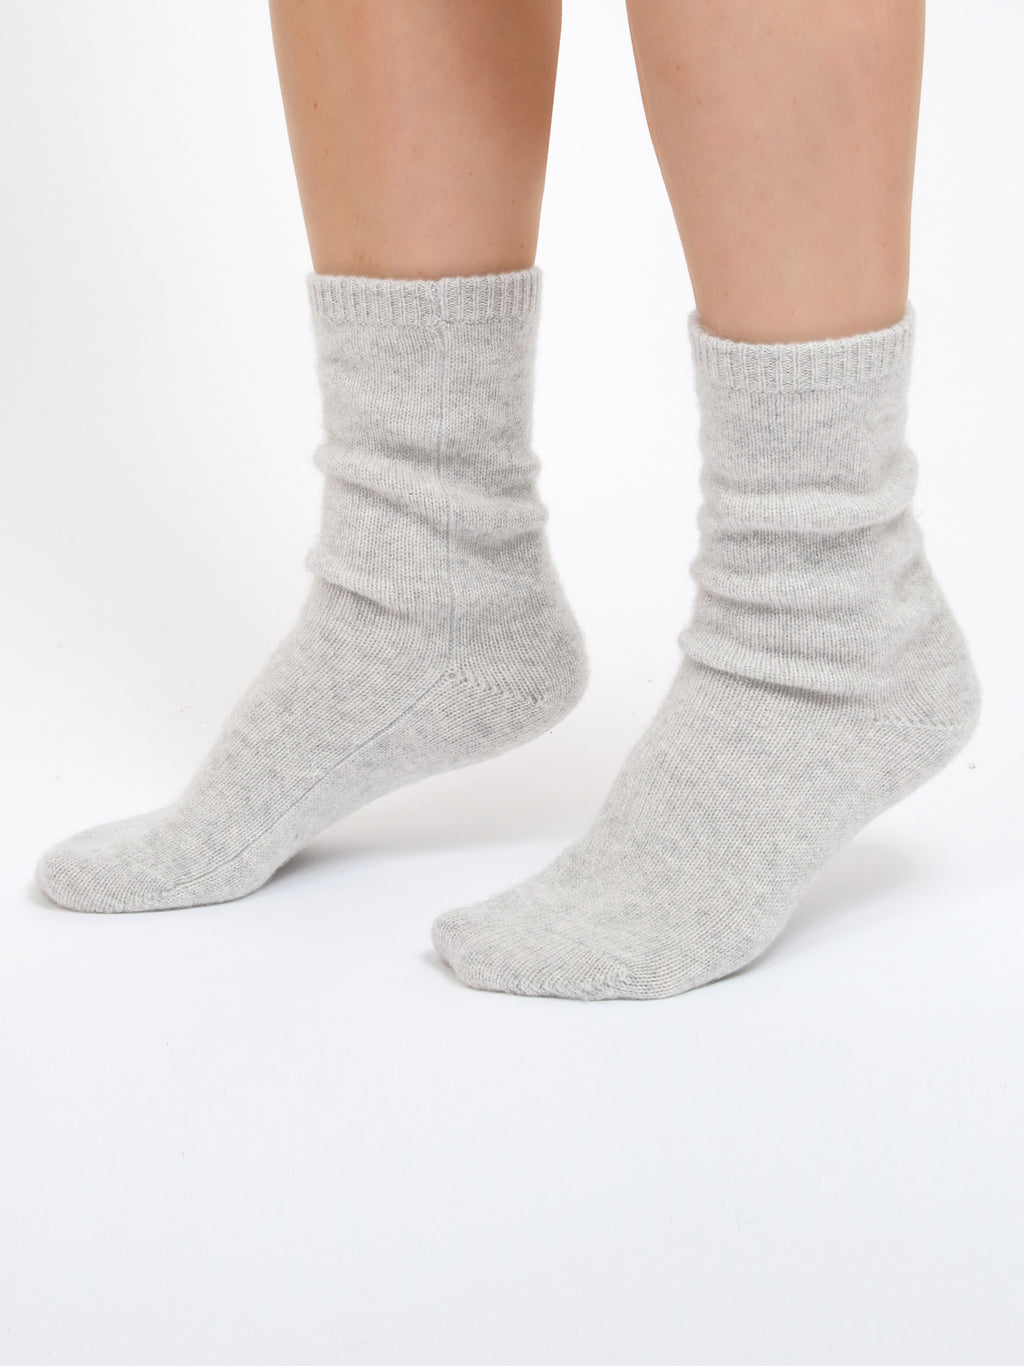 cashmere socks in 100% cashmere by Kashmina